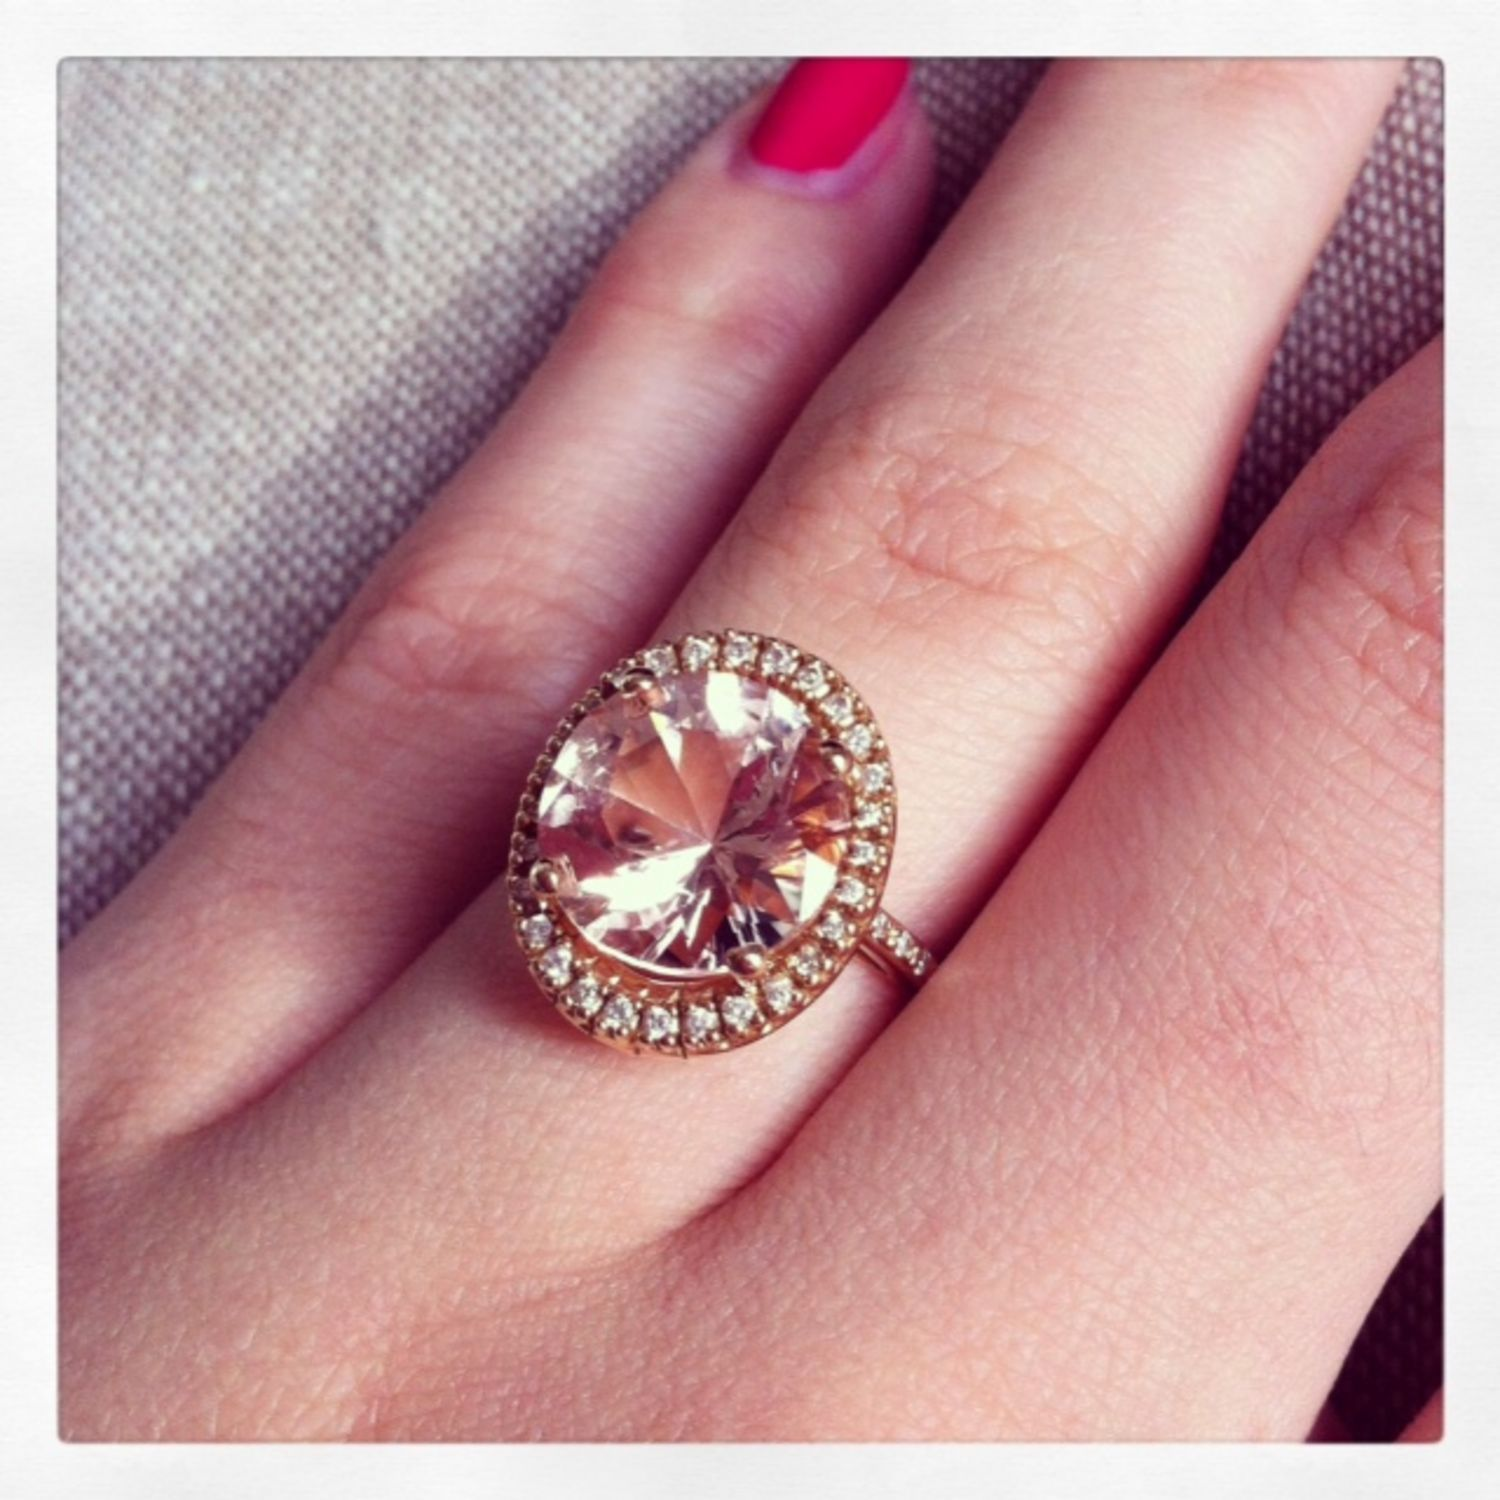 5 Real-Girl Engagement Rings With Enough Sparkle to Warm Your Frost ...